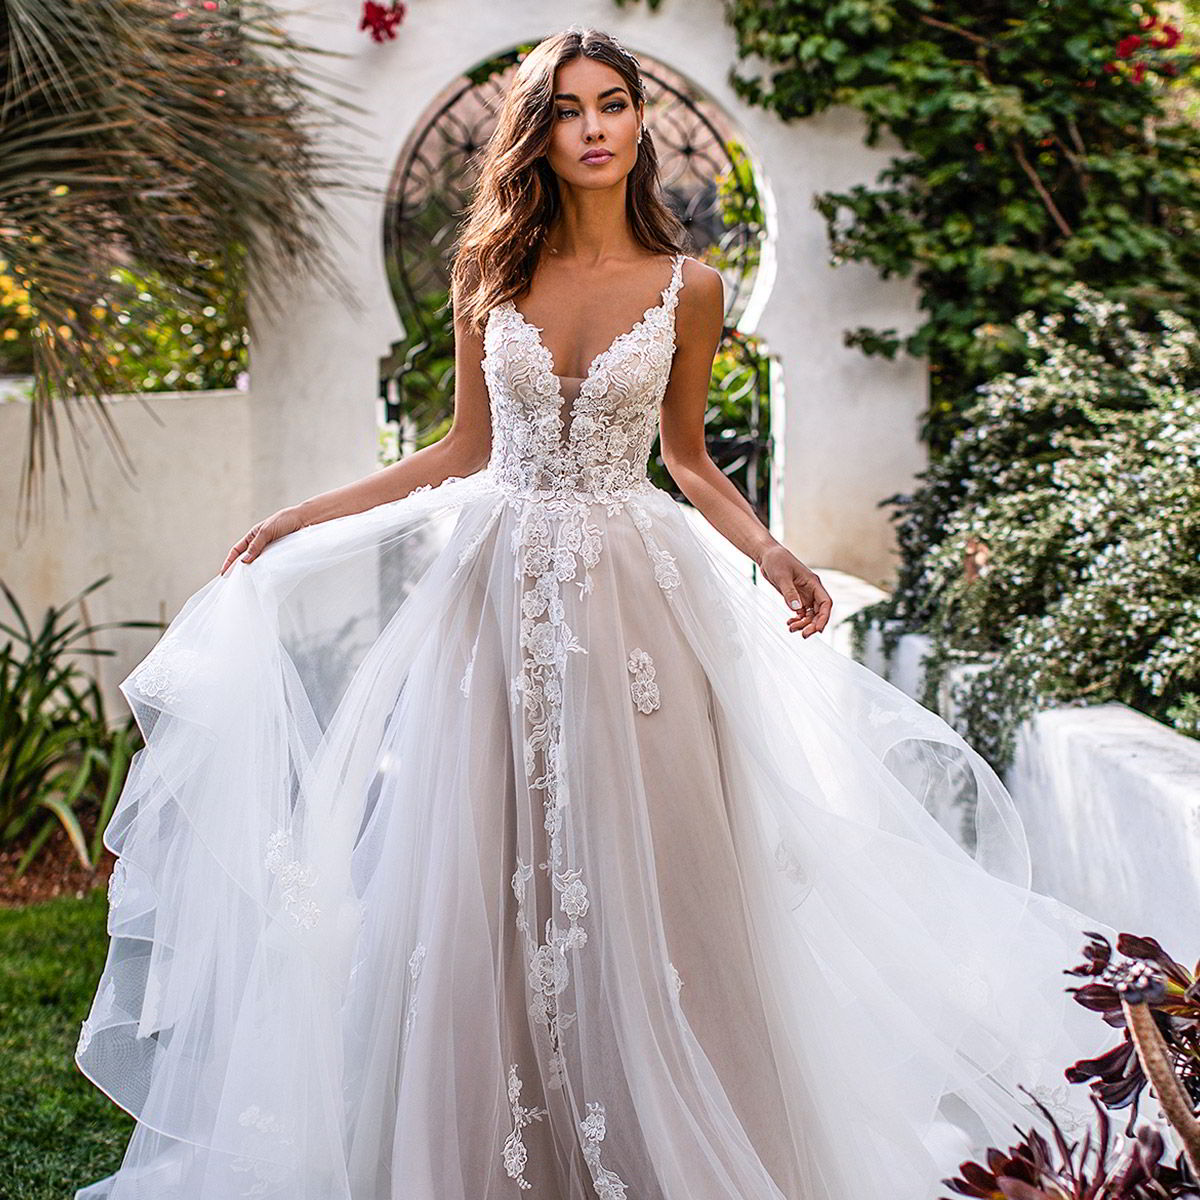 Couture Designer Wedding Gowns: Moonlight Couture Fall 2019 Wedding Dresses